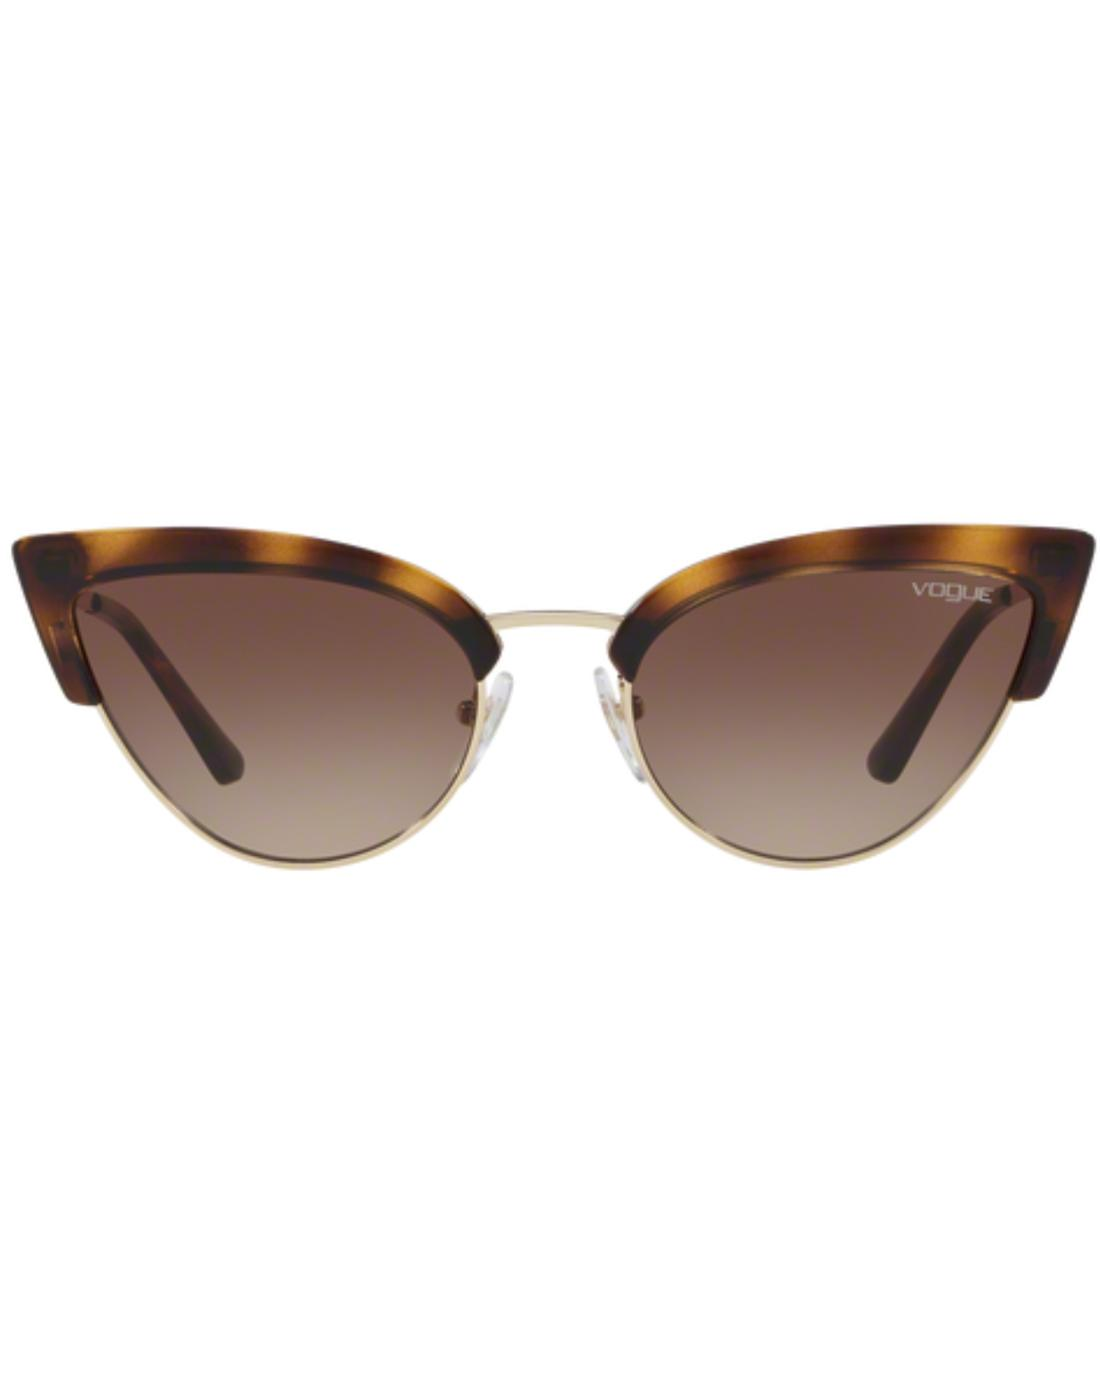 VOGUE Retro 50s Vintage Cats-Eye Sunglasses Havana